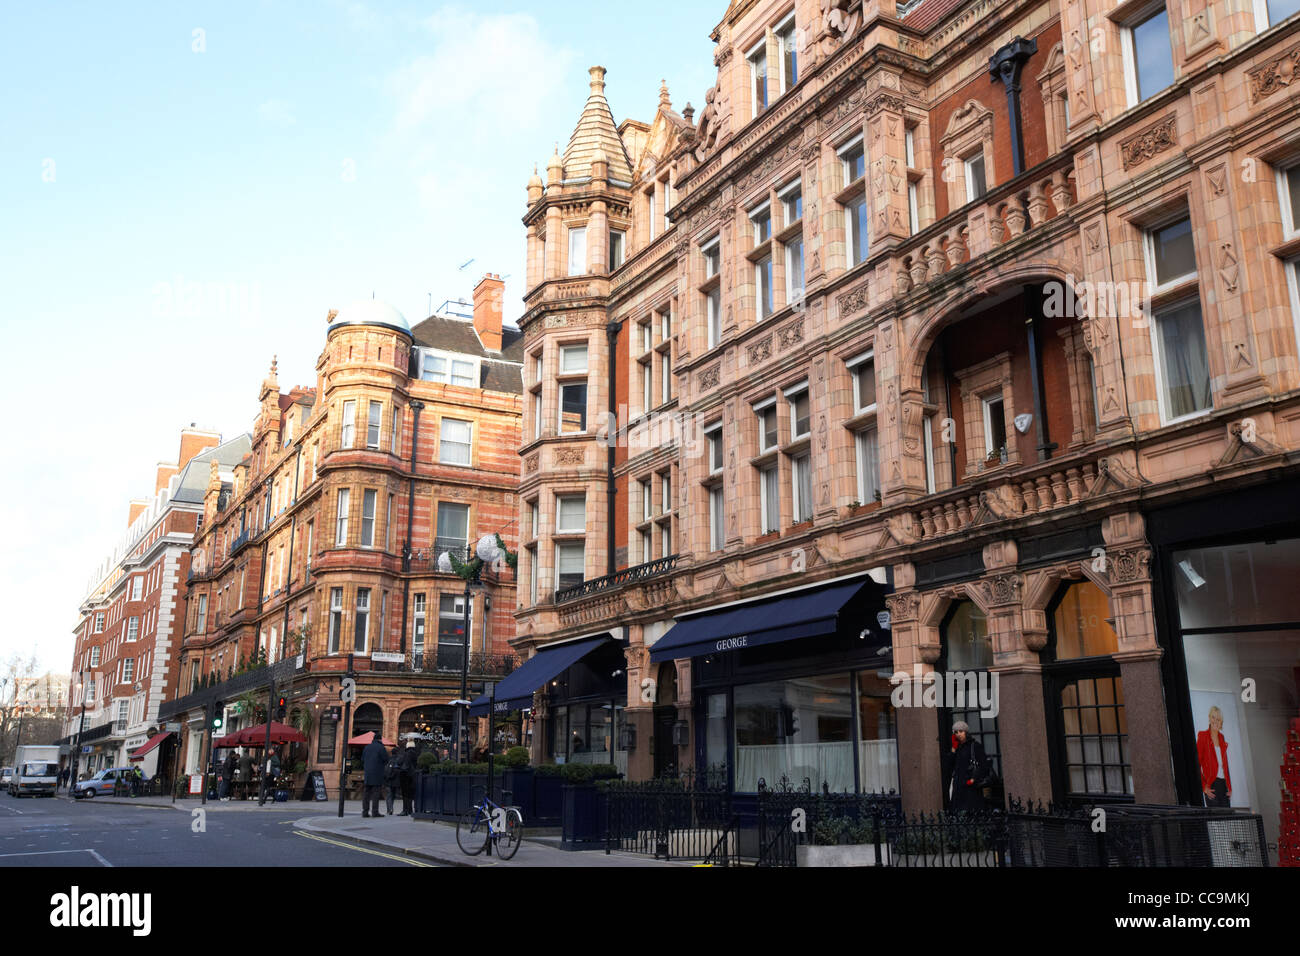 exclusive shops and restaurants and george private members club on south audley street mayfair London England UK - Stock Image